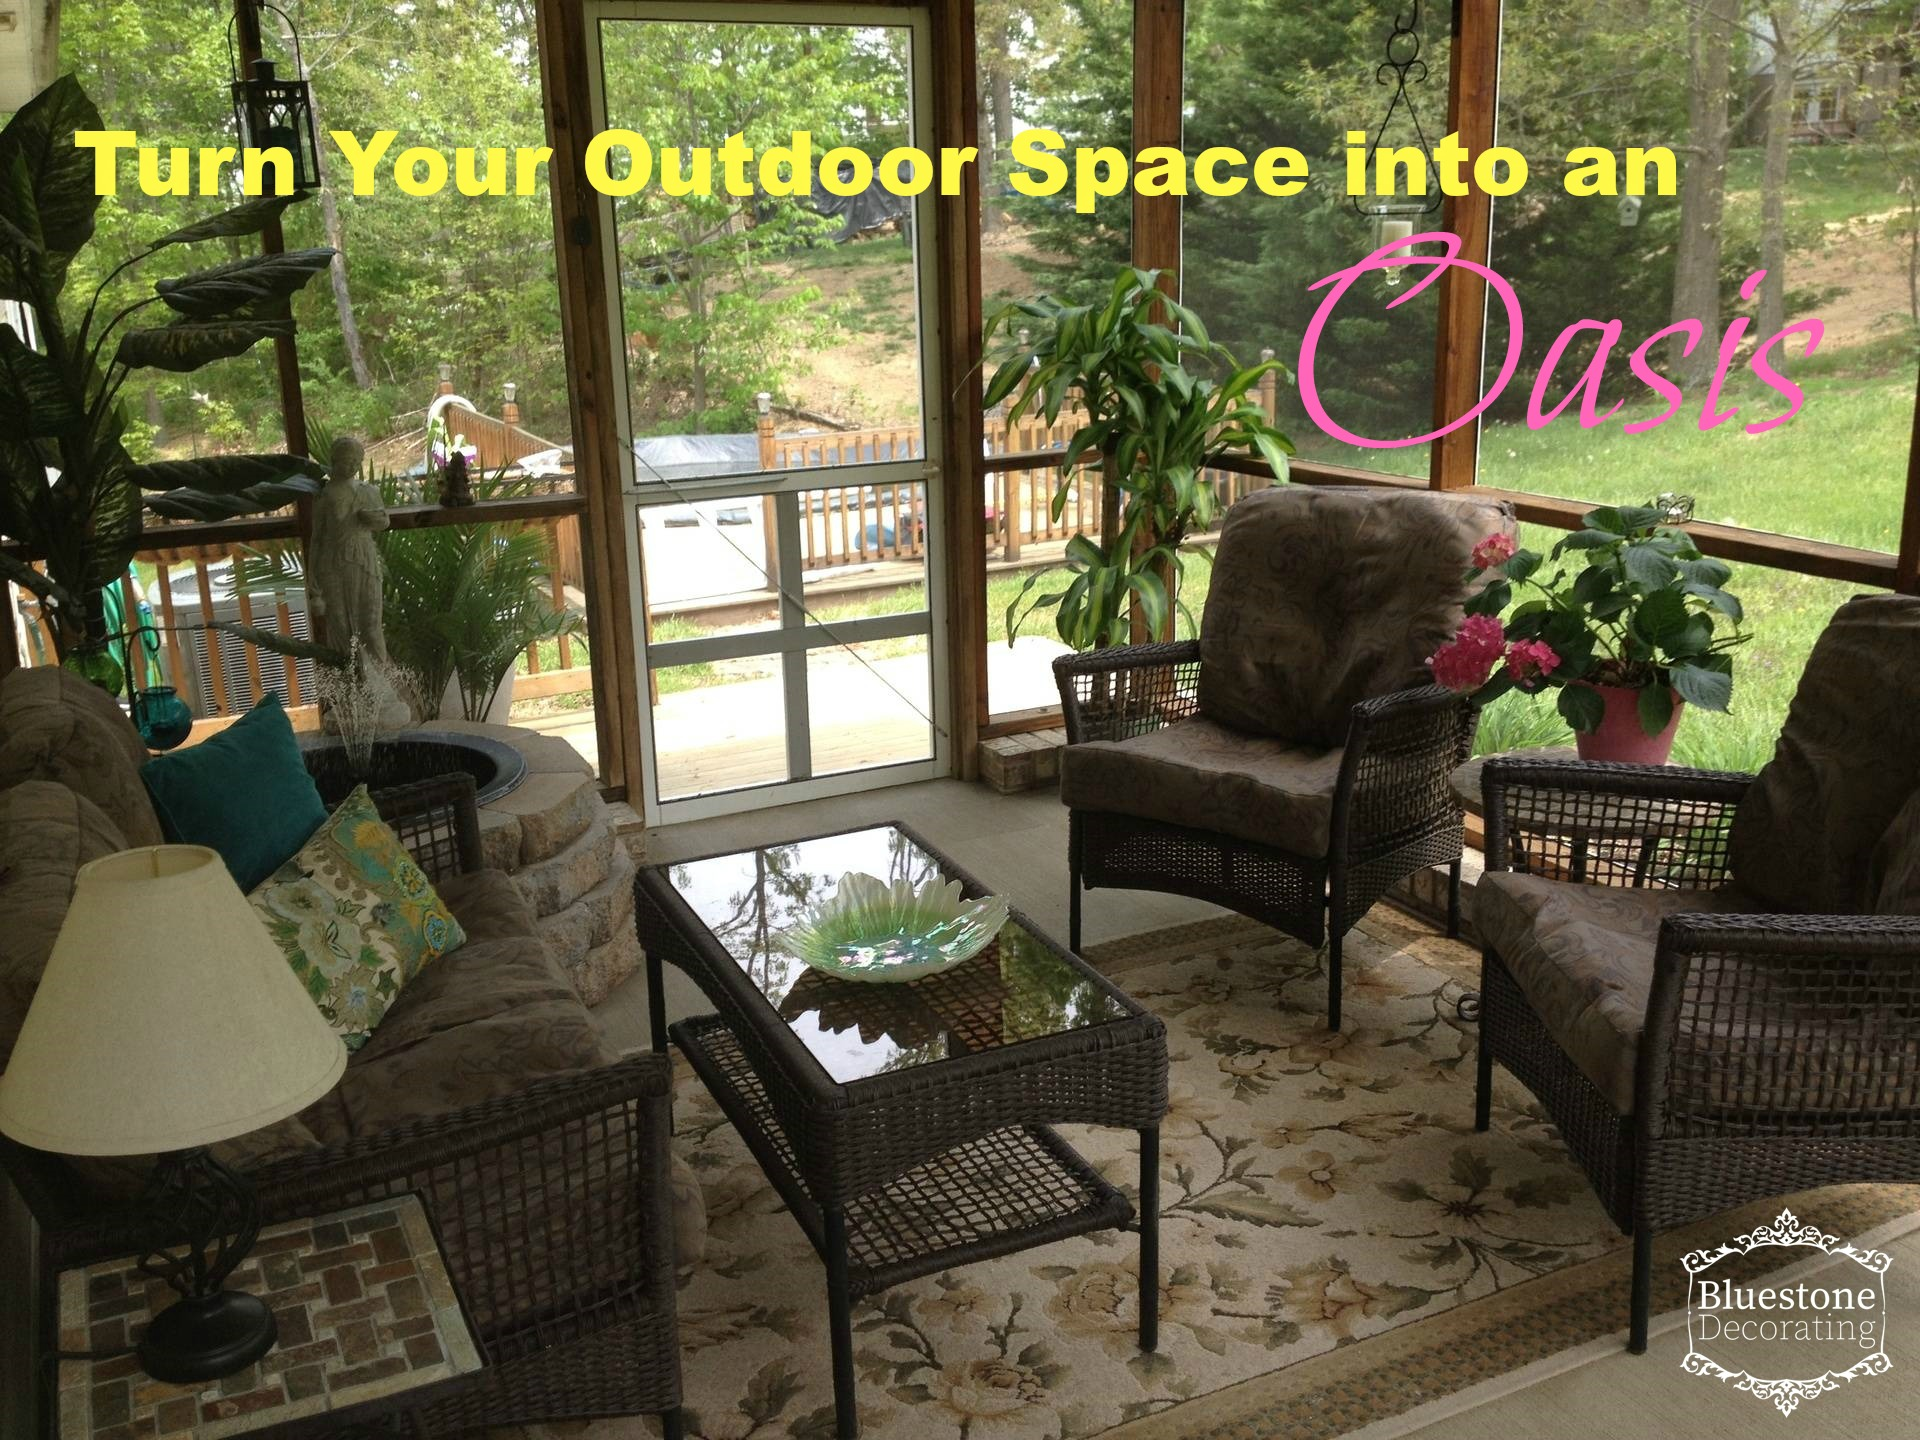 Outdoor Living Space in Penn Laird, VA by Crystal Ortiz